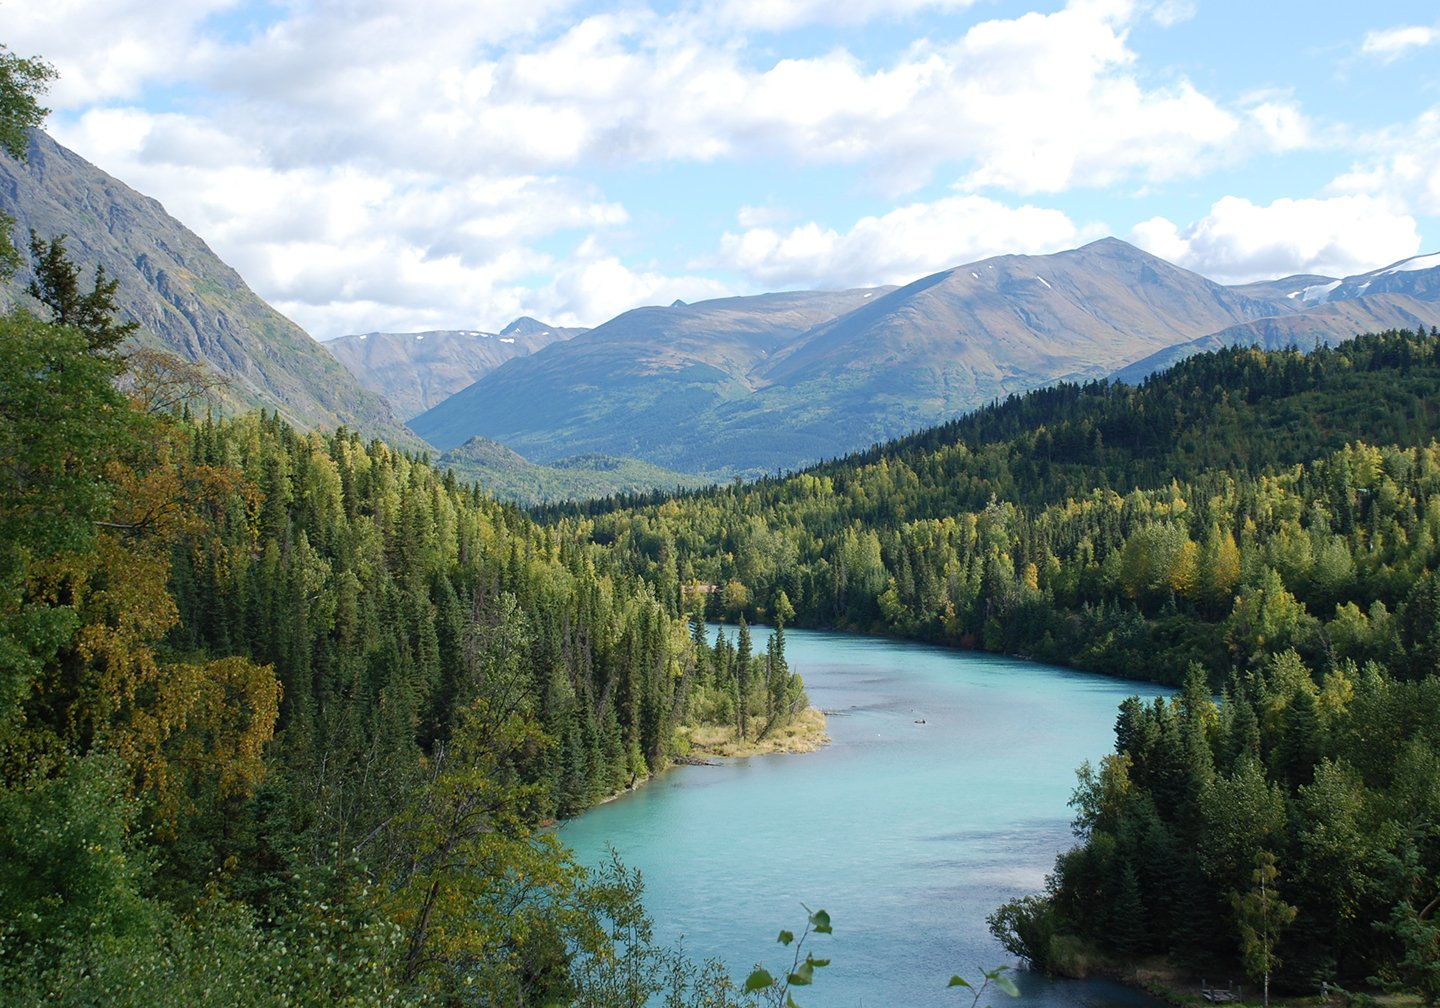 The Kenai River in Alaska, with dense forest on either side and mountains in the distance.